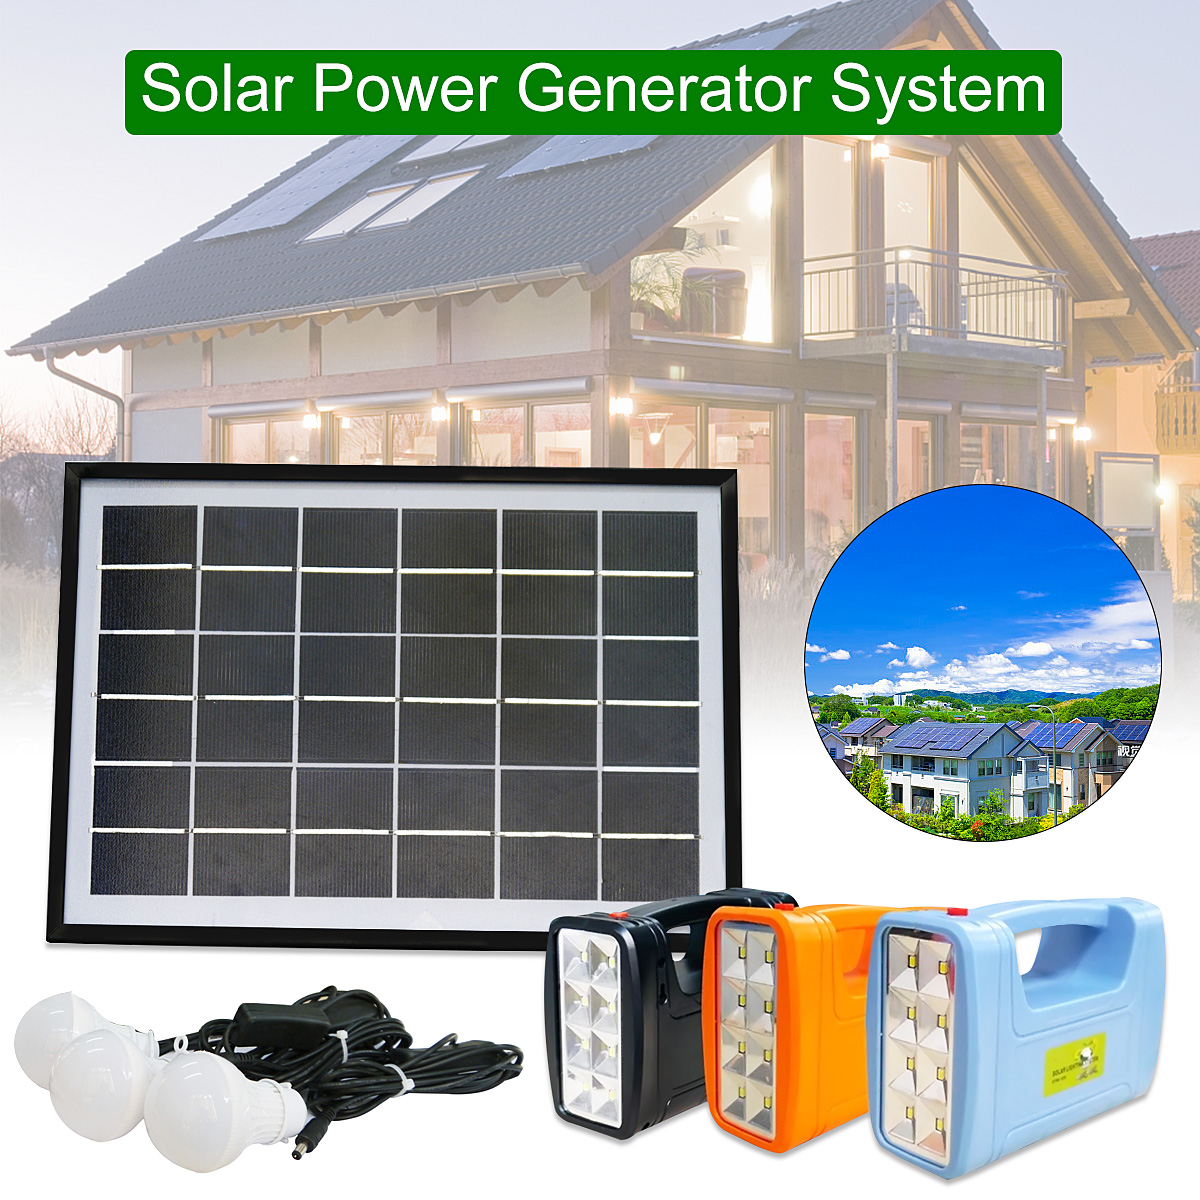 3W Solar Panel Portable Solar AC Kit Solar Power System Camping Portable Generator With Bulbs